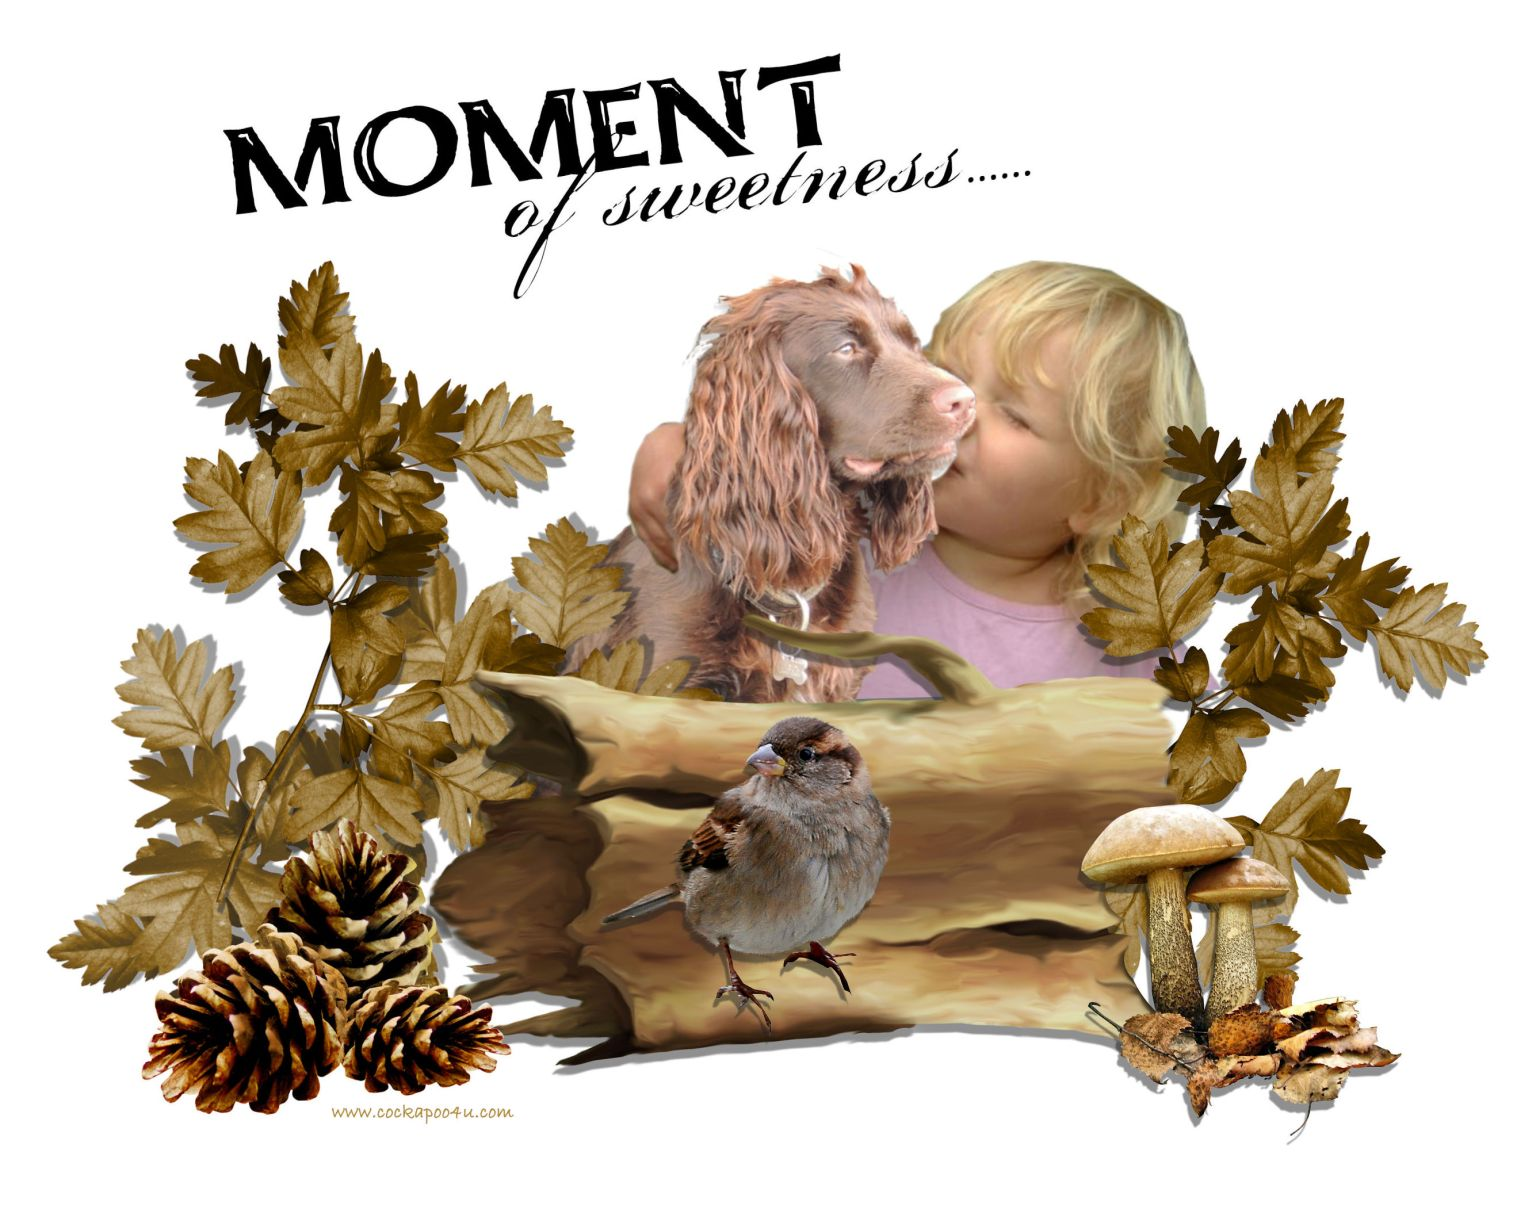 A Moments Of Sweetness signed